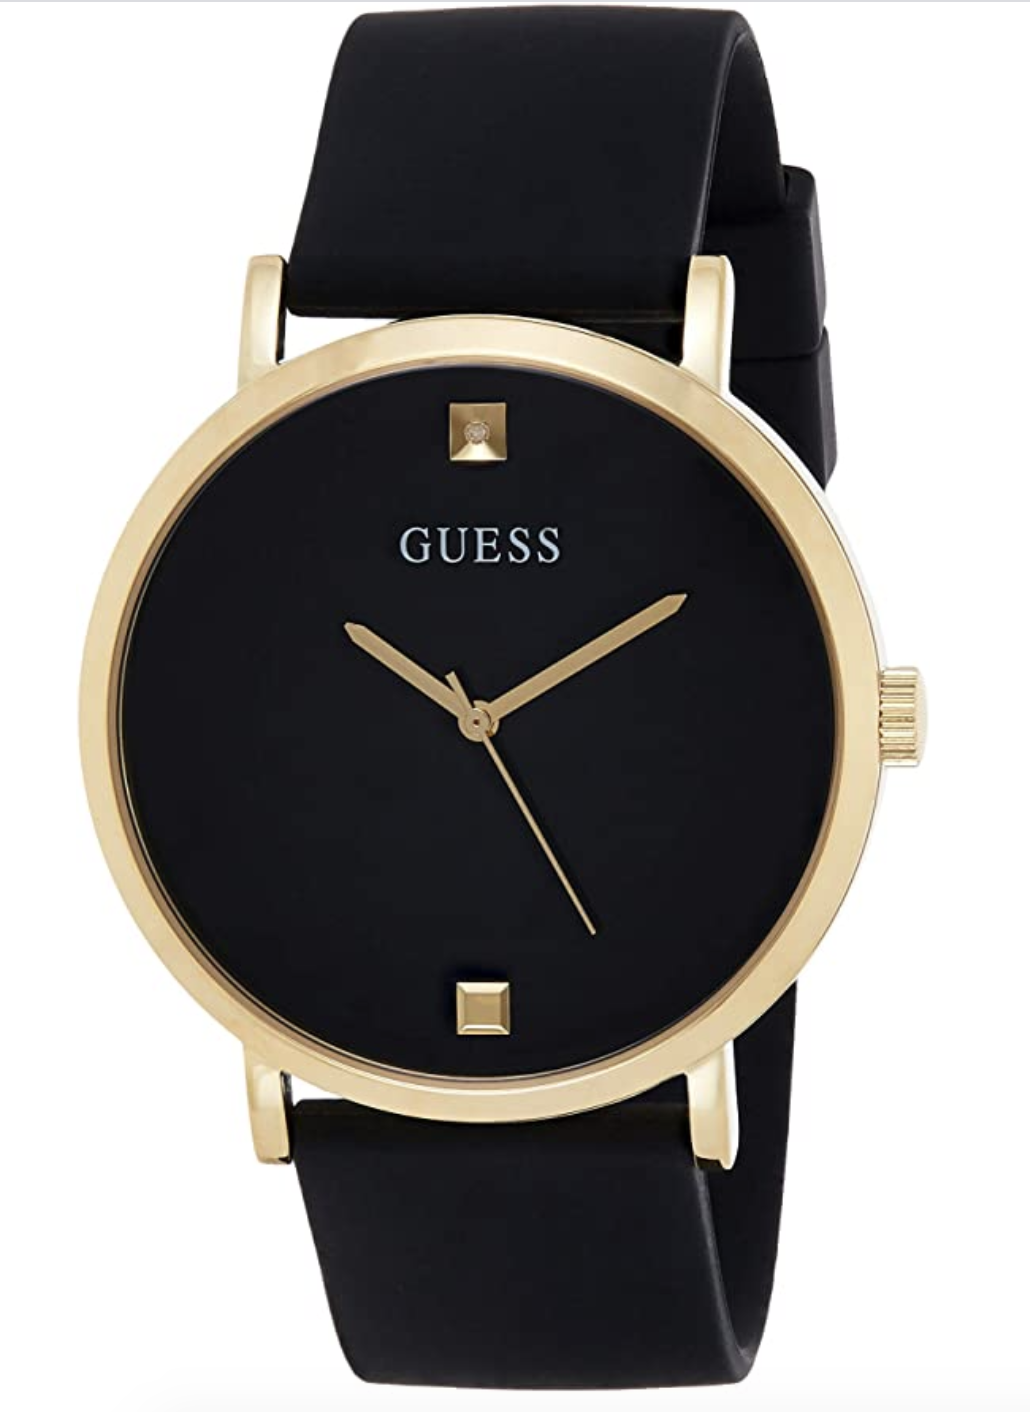 Guess Supercharged Men's Analog Japanese Quartz Watch With Silicone Bracelet W1264G1